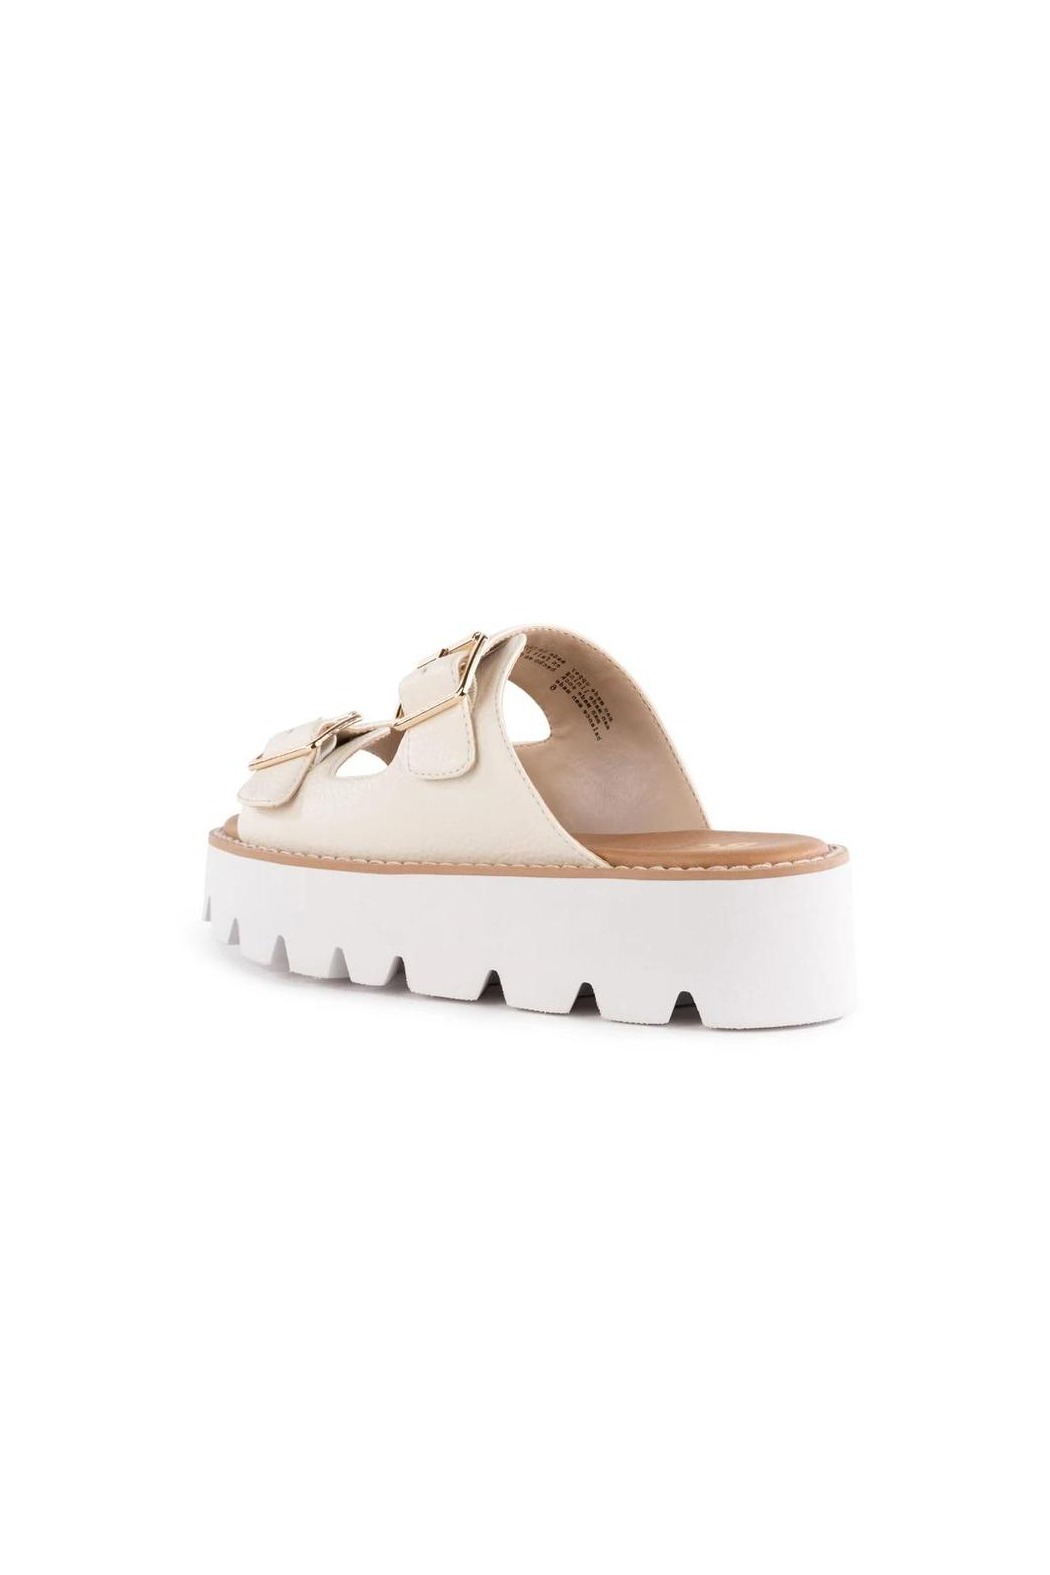 BC Footwear Hand To Hold Sandal - Side Cropped Image